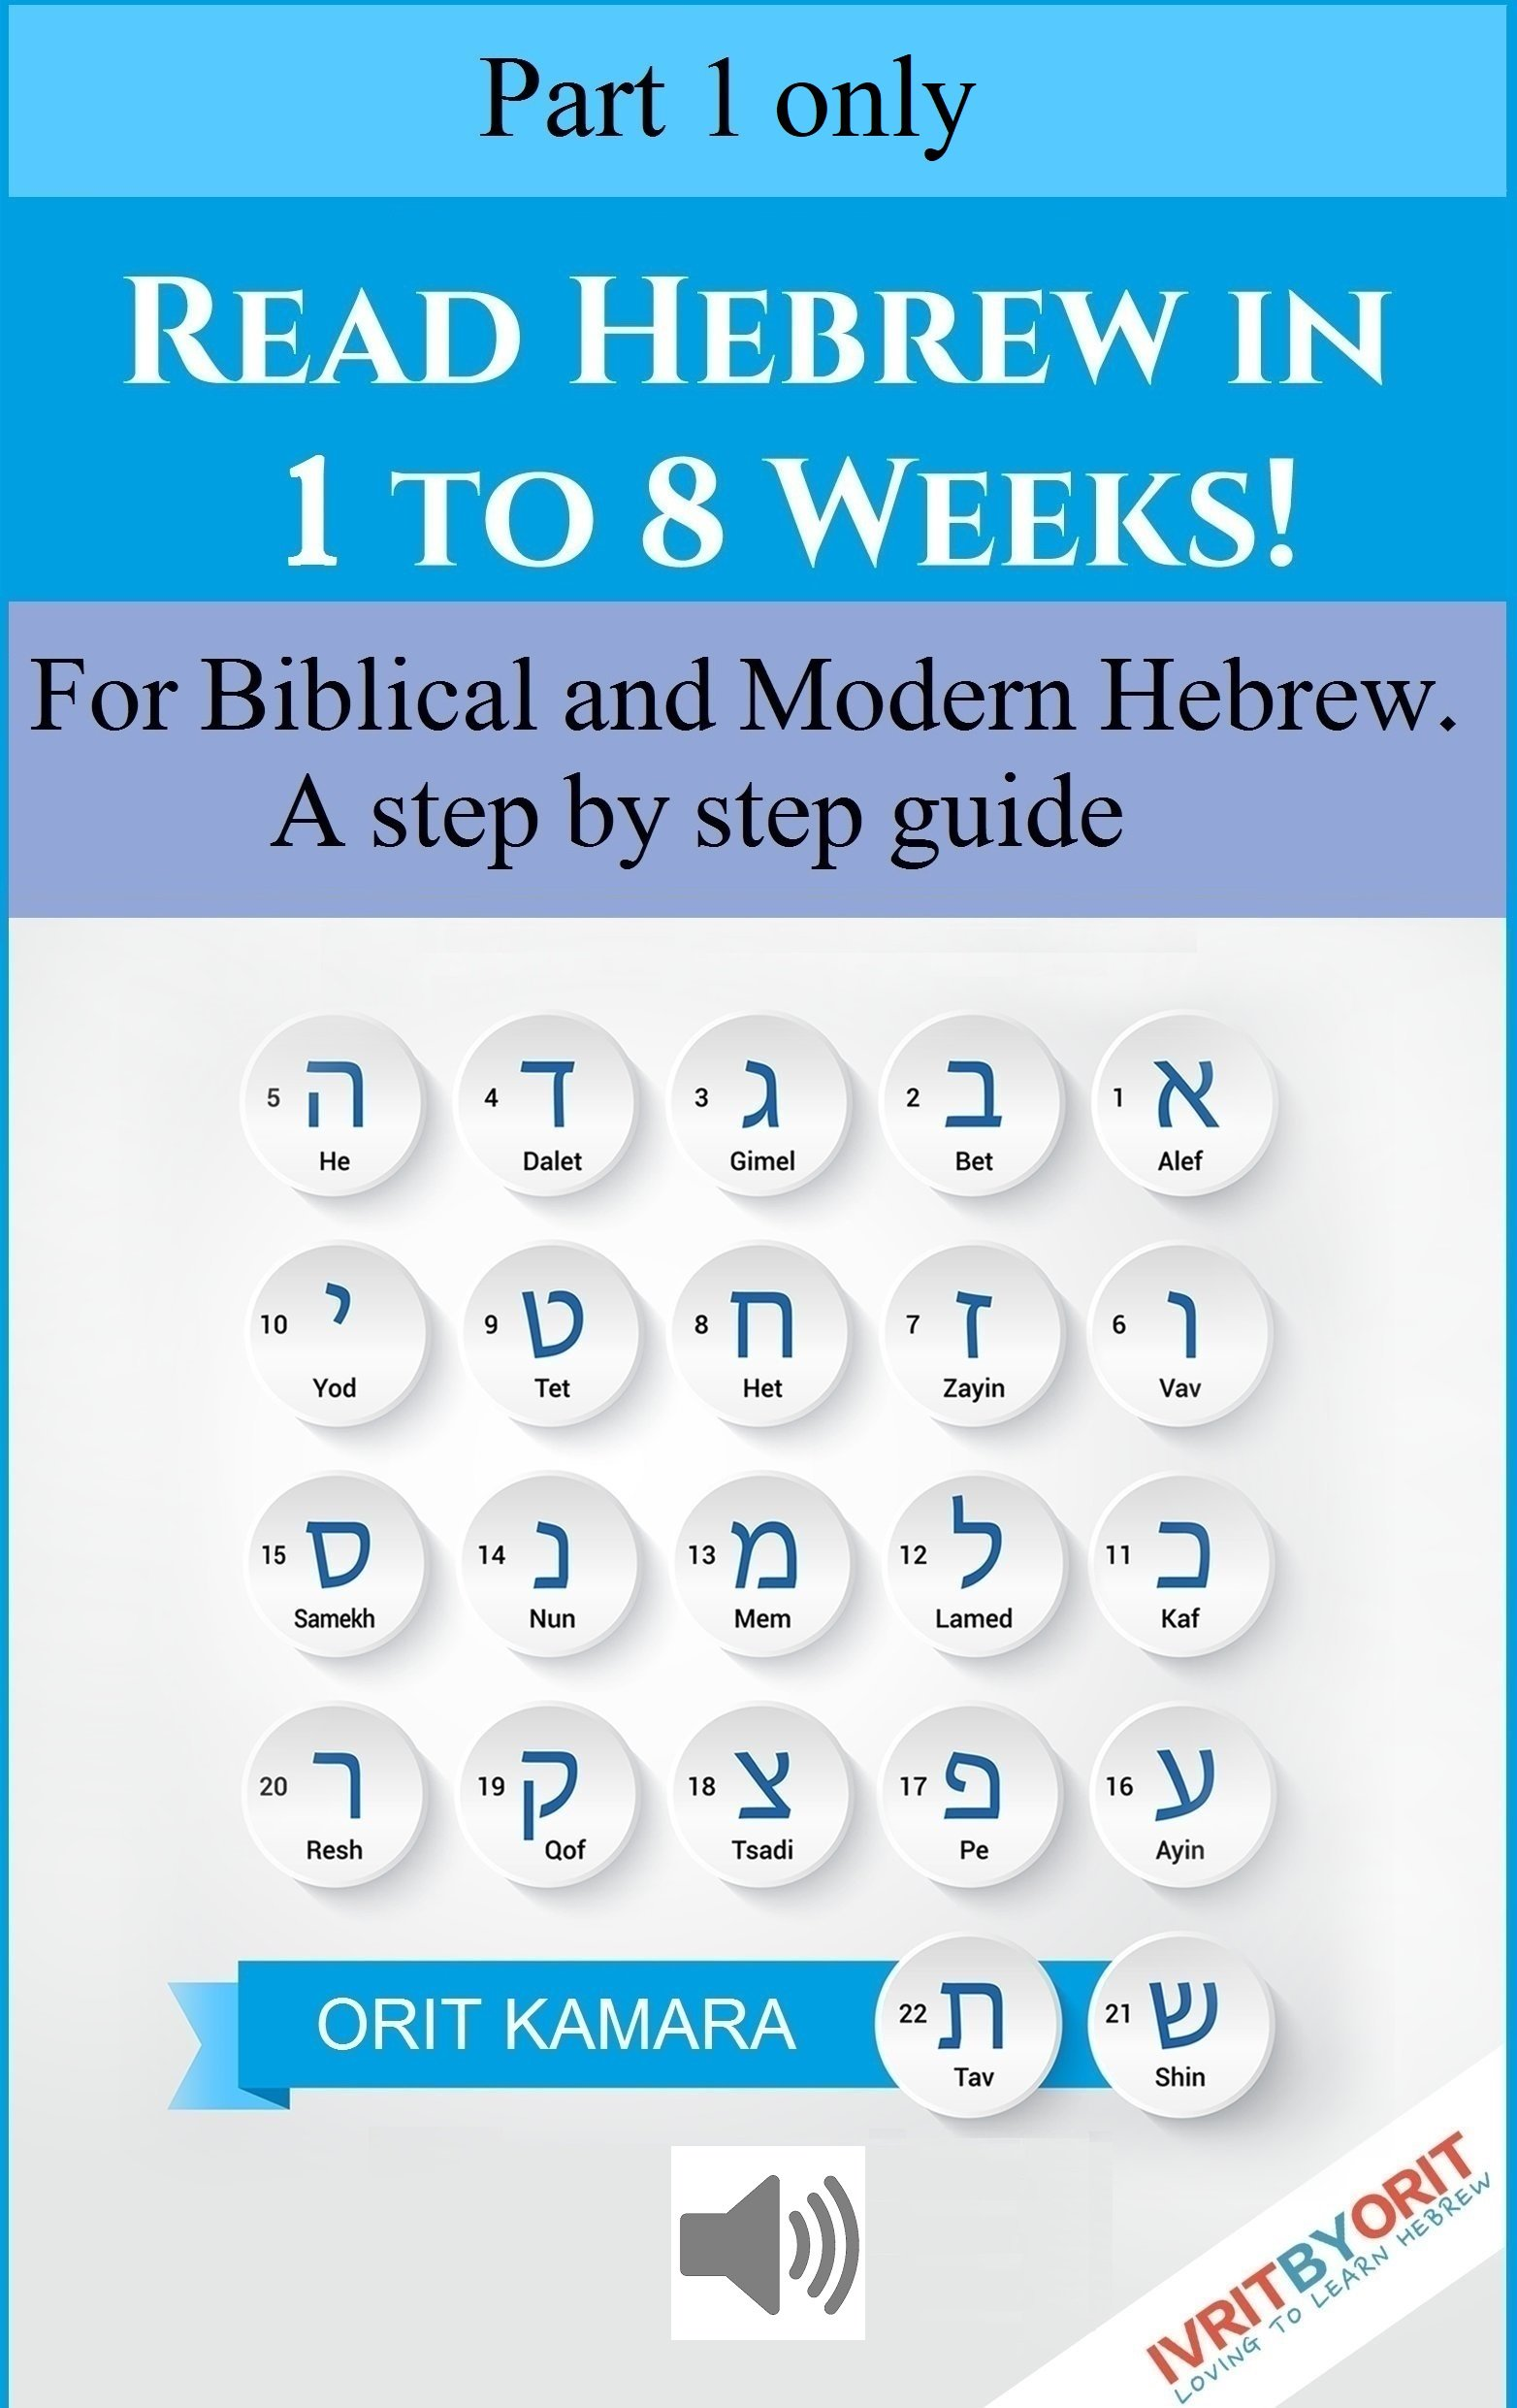 Learn To Read Hebrew In 1 To 8 Weeks   1 Of 8  For Biblical And Modern Hebrew   A Step By Step Guide Including Audio For Learning And Teaching The Hebrew ... Letters And Vowels.  English Edition